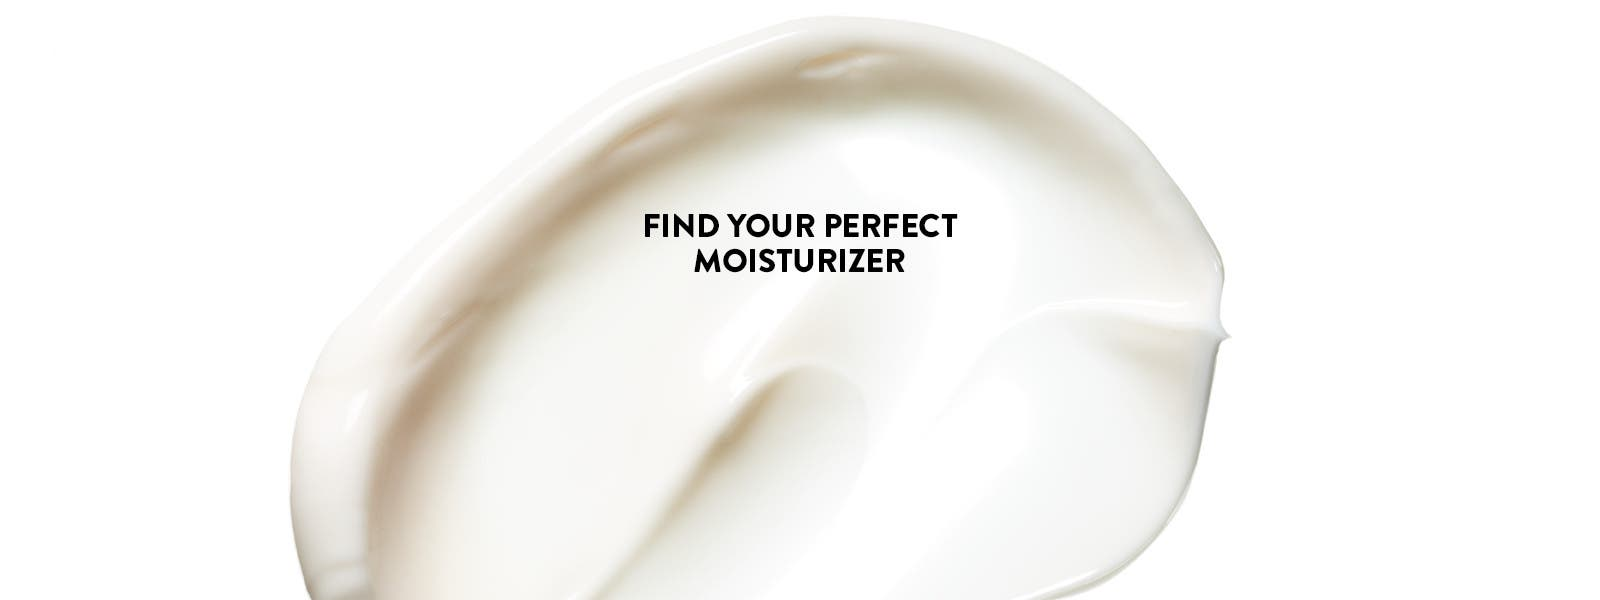 Find your perfect moisturizer.